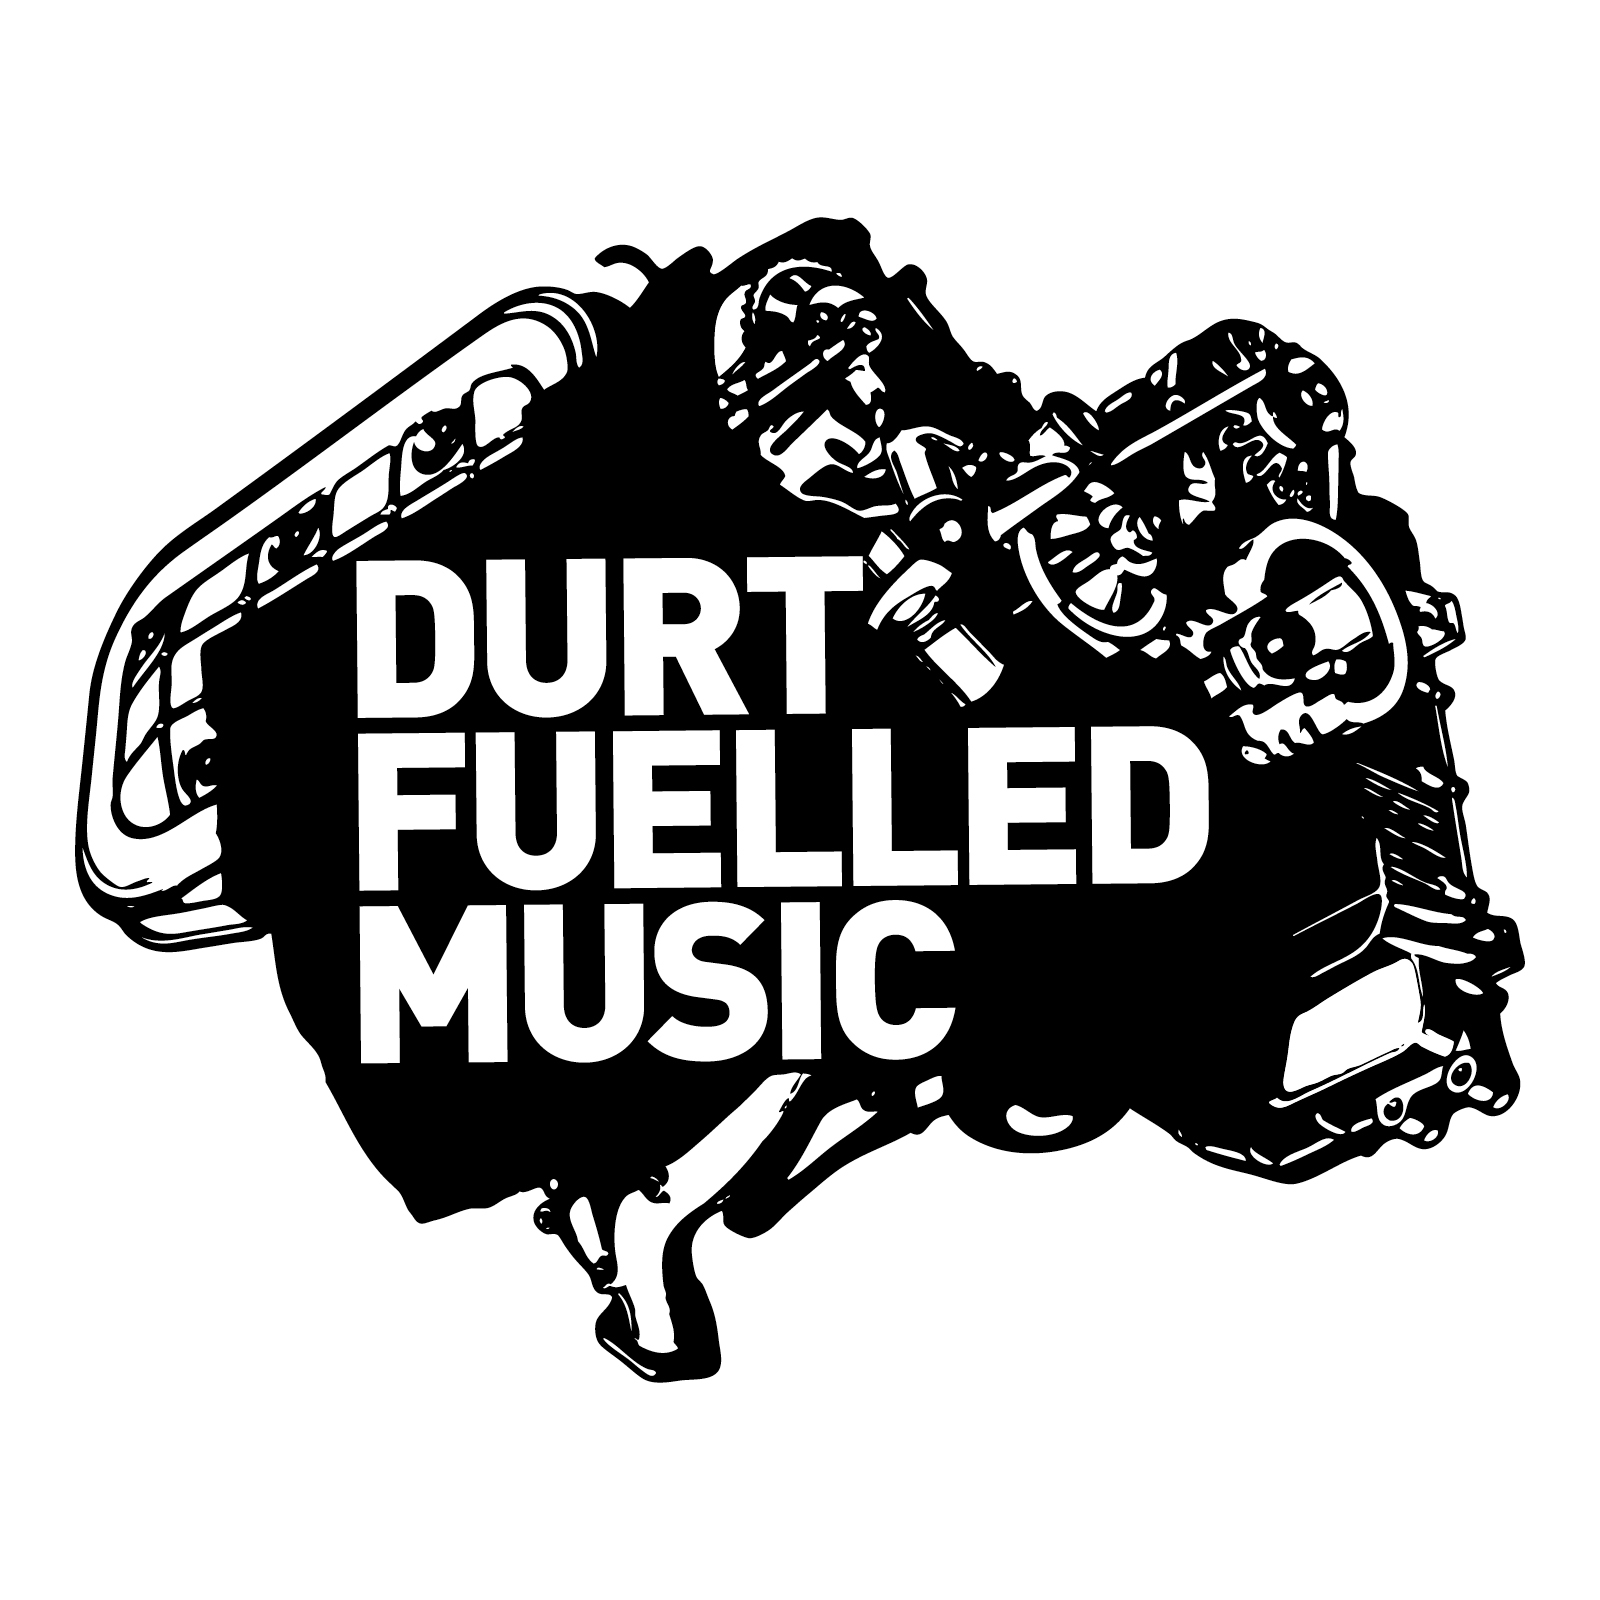 Durt Fuelled Music   Branding   By James-Lee Duffy